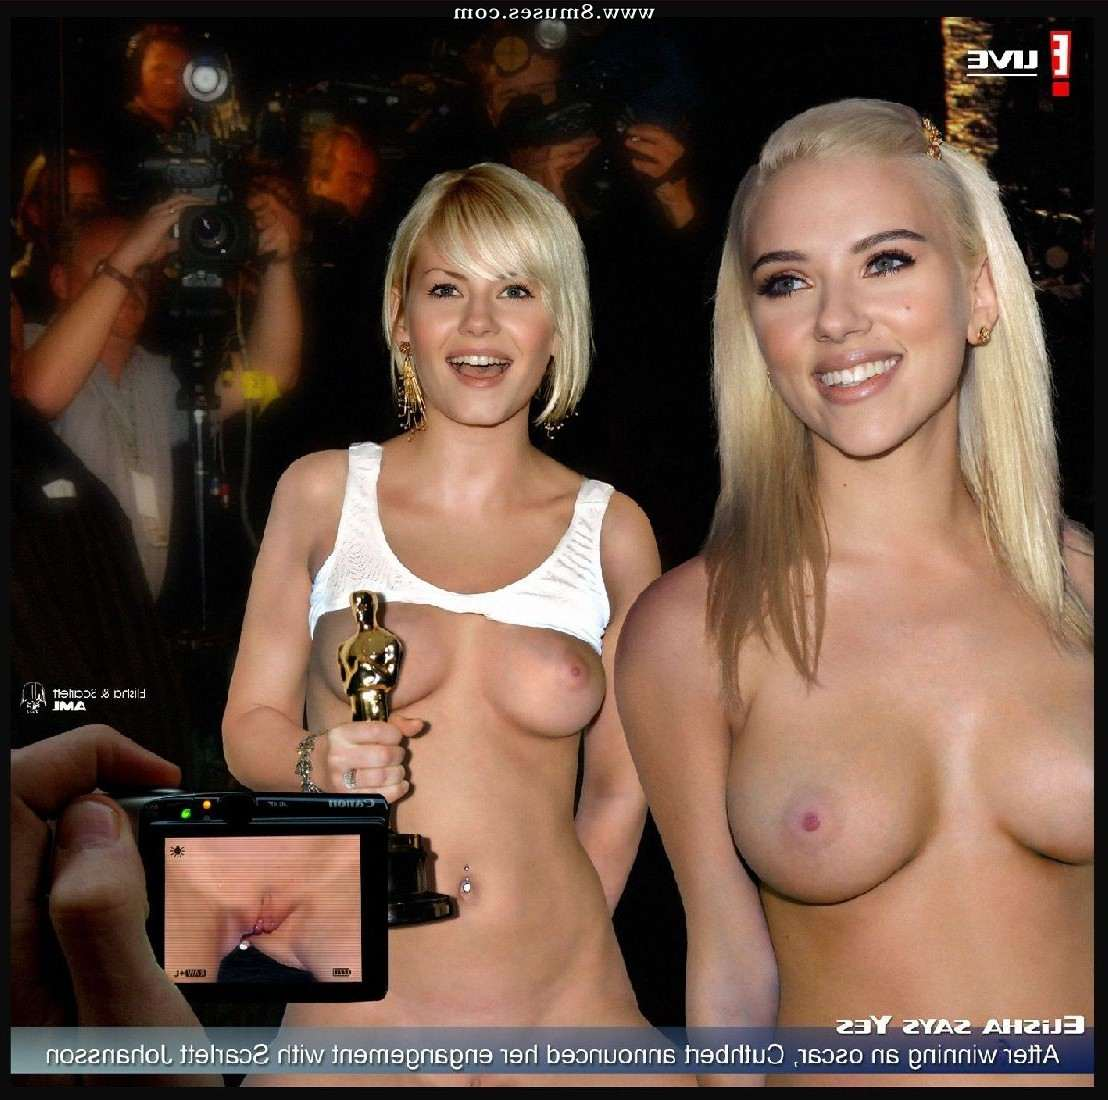 Fake-Celebrities-Sex-Pictures/Elisha-Cuthbert Elisha_Cuthbert__8muses_-_Sex_and_Porn_Comics_166.jpg